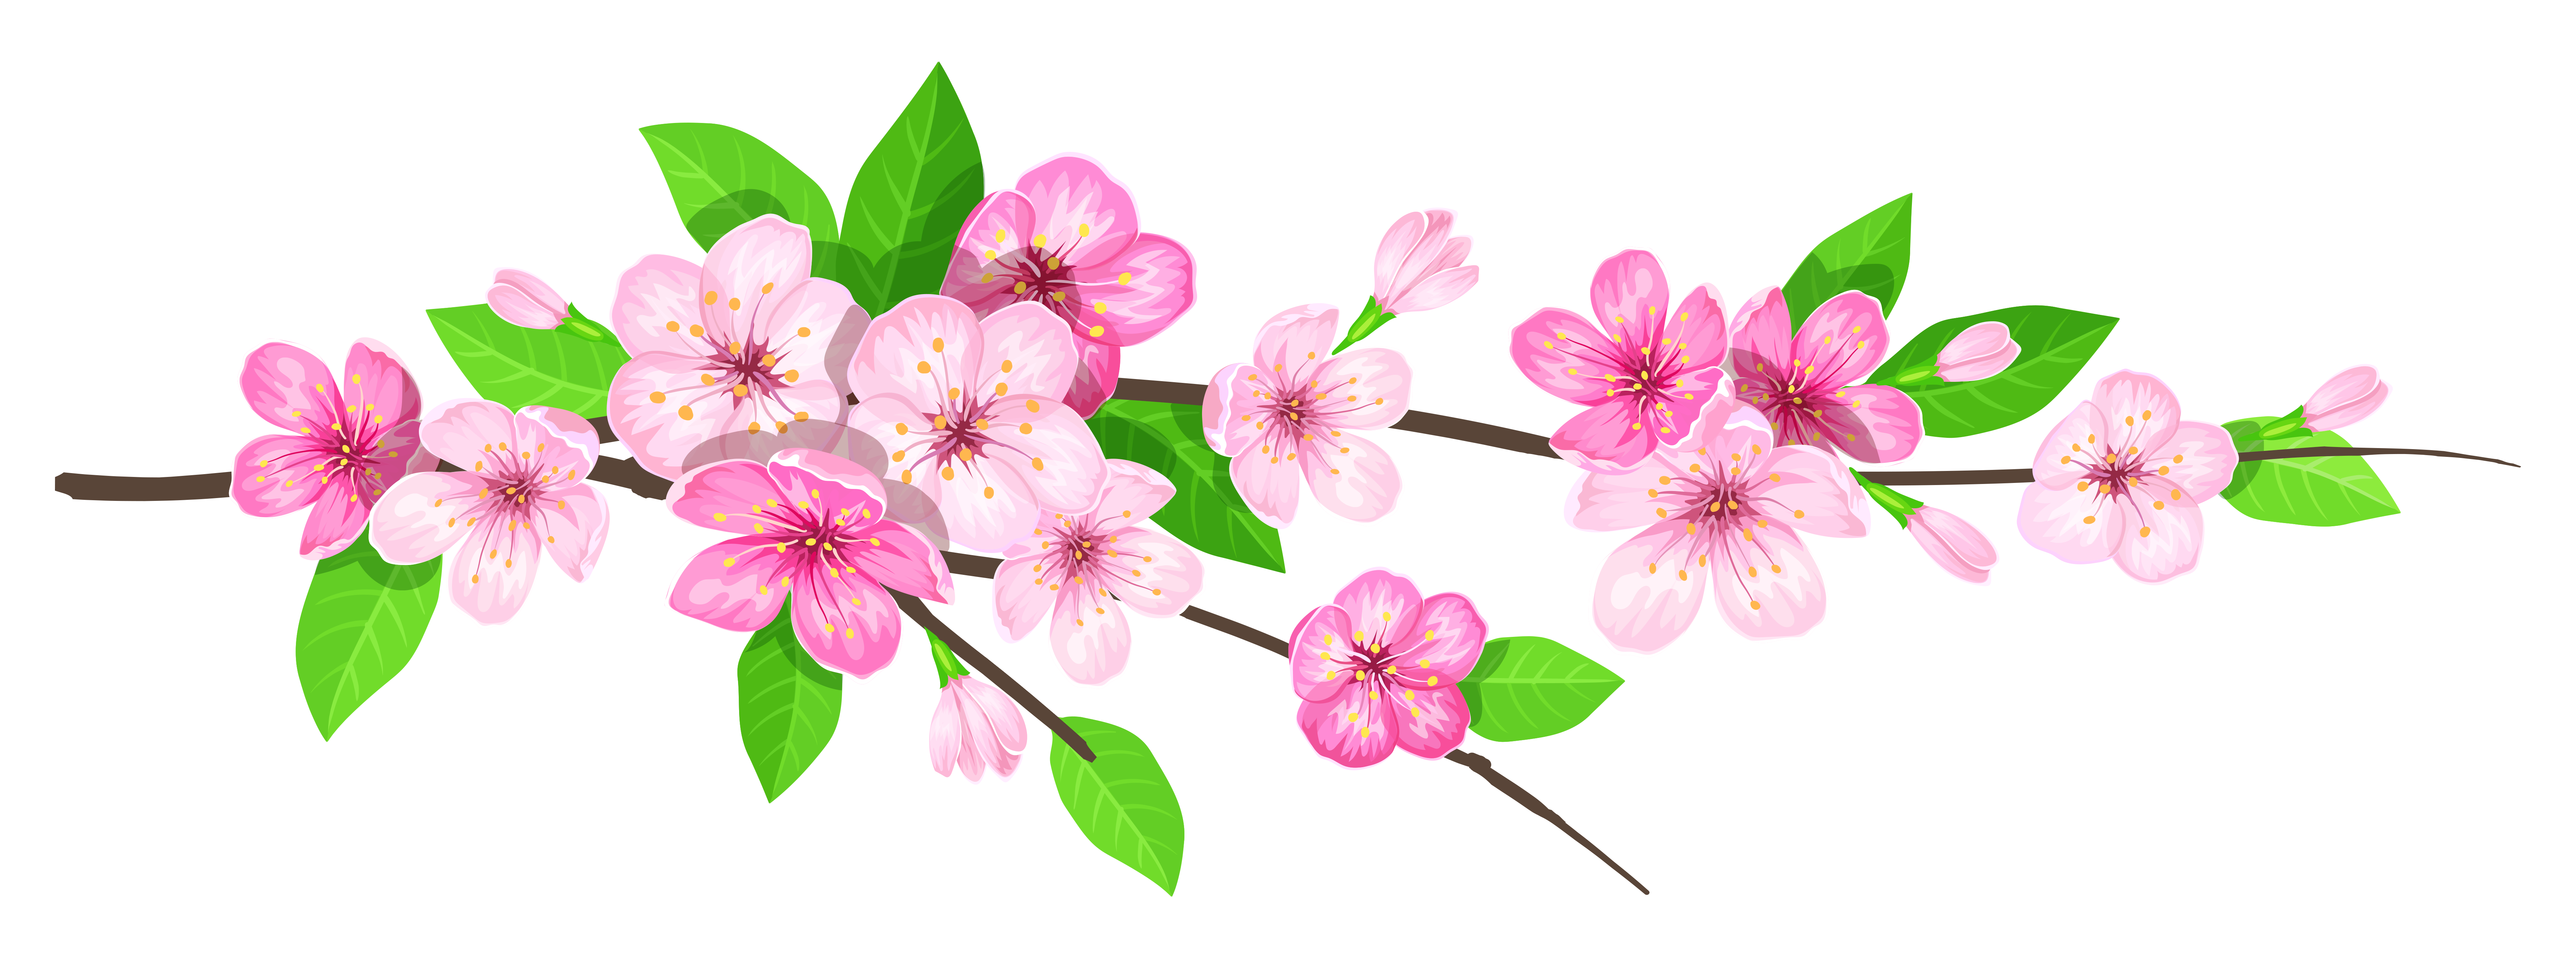 Spring png. Pink branch image gallery